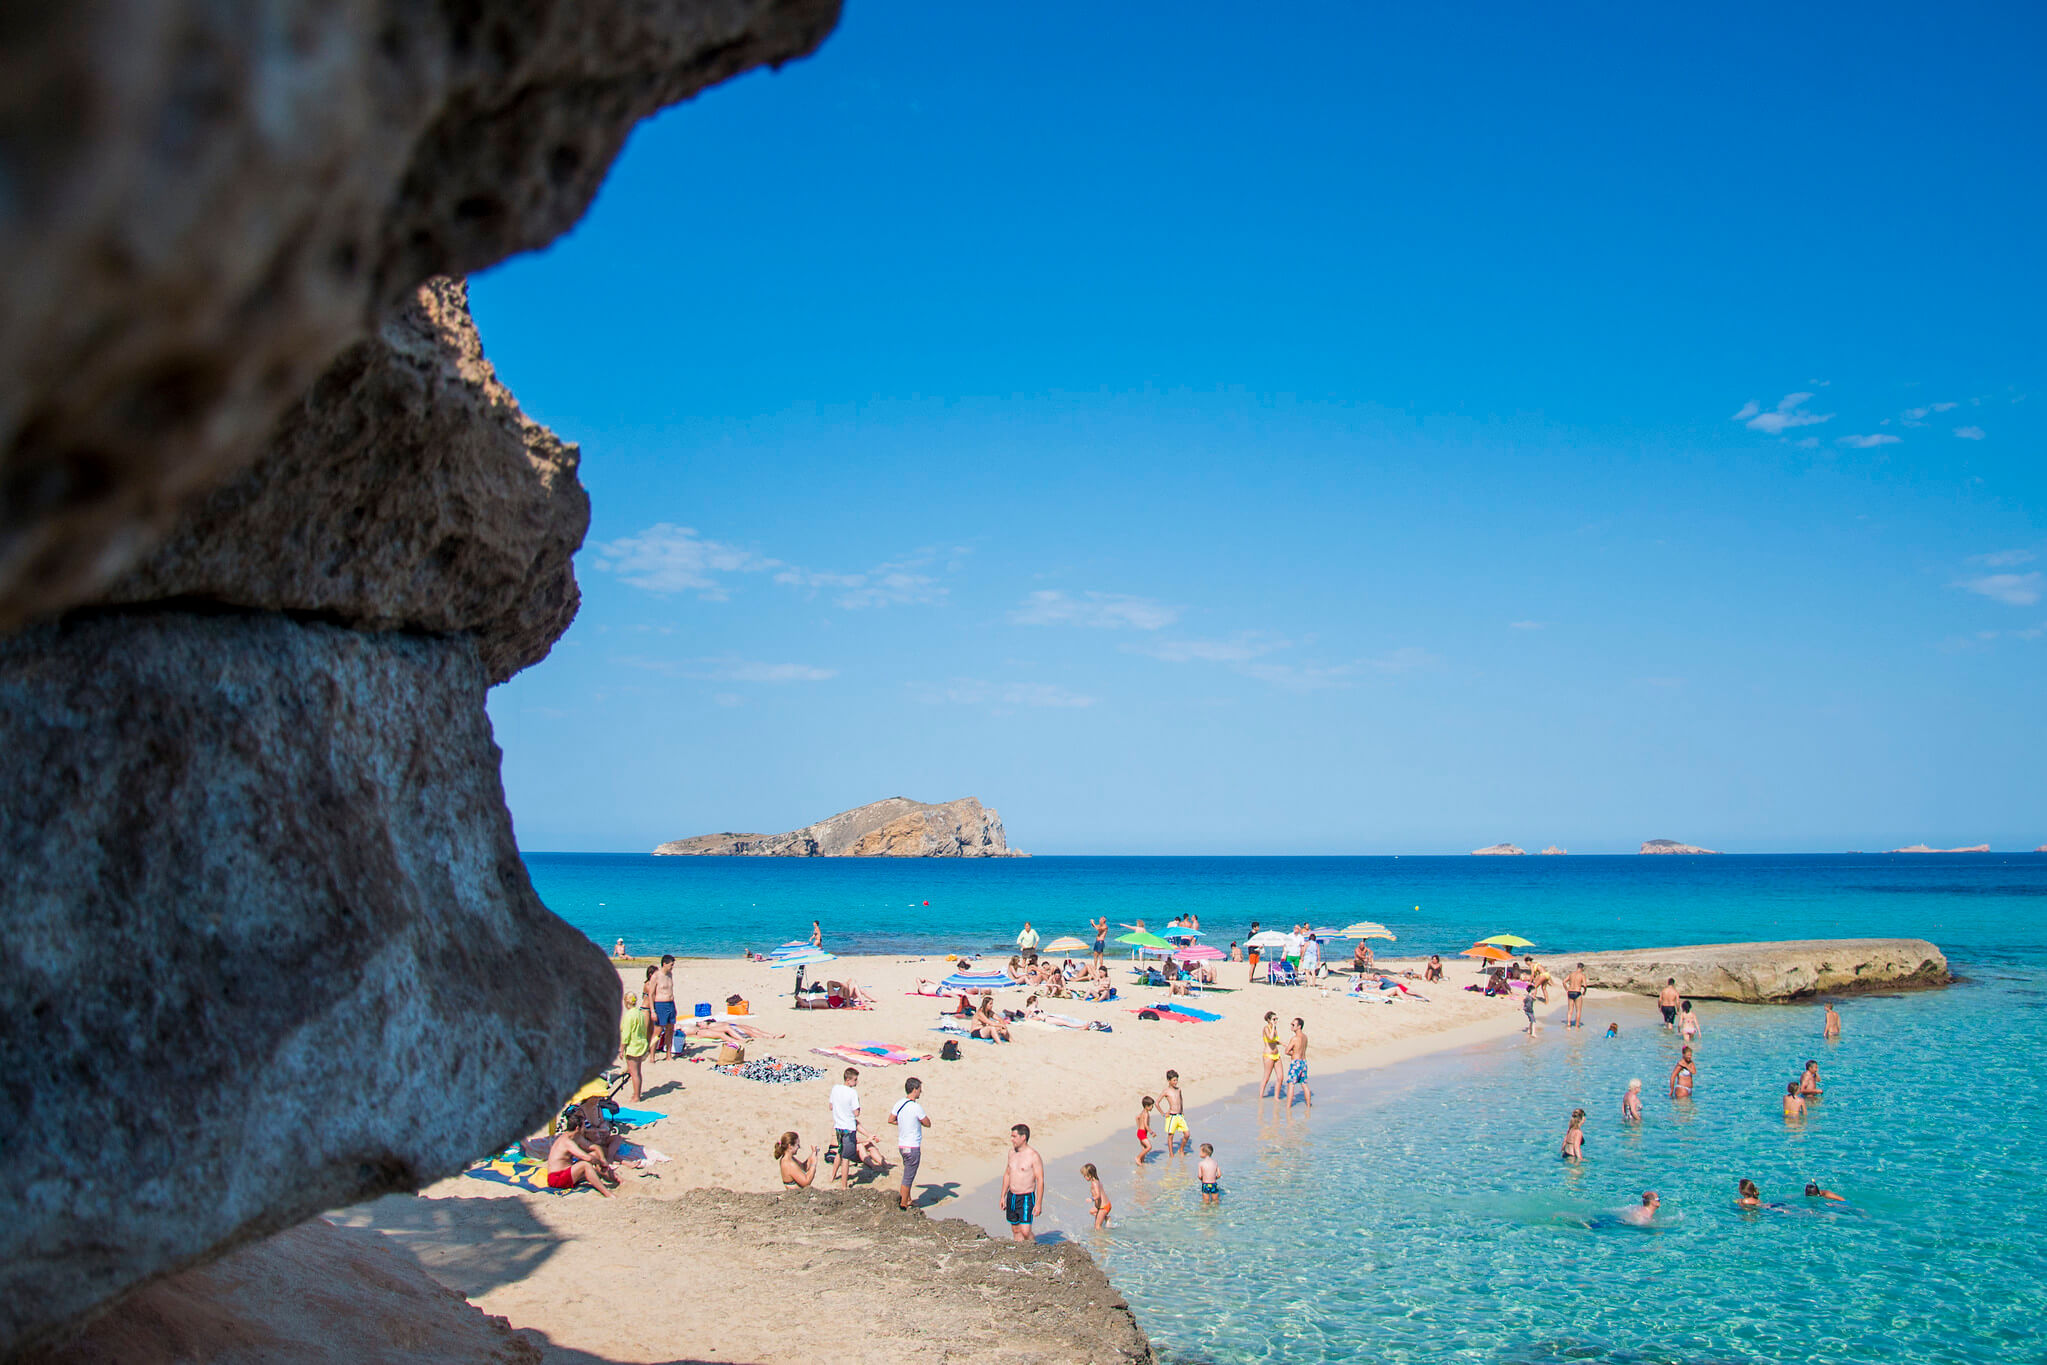 https://www.white-ibiza.com/wp-content/uploads/2020/03/ibiza-guide-areas-south-west-2020-12.jpg